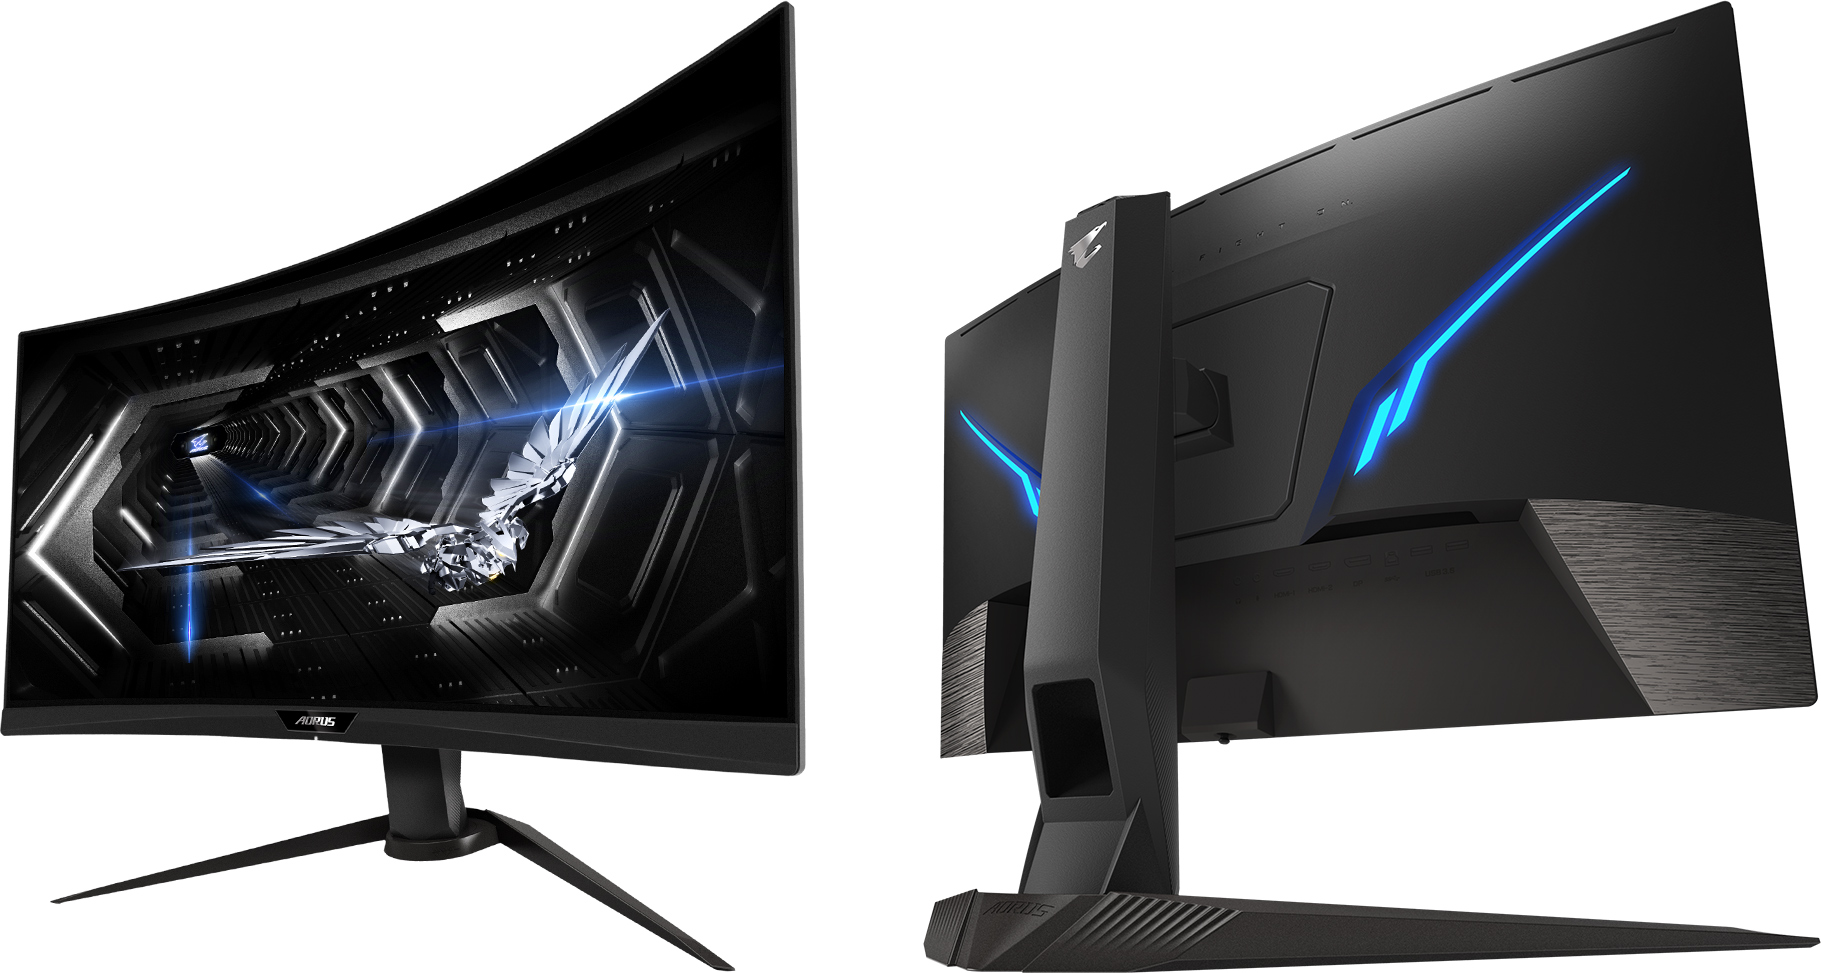 GIGABYTE's Aorus CV27Q Curved 'Tactical' Monitor: 165 Hz QHD With ...